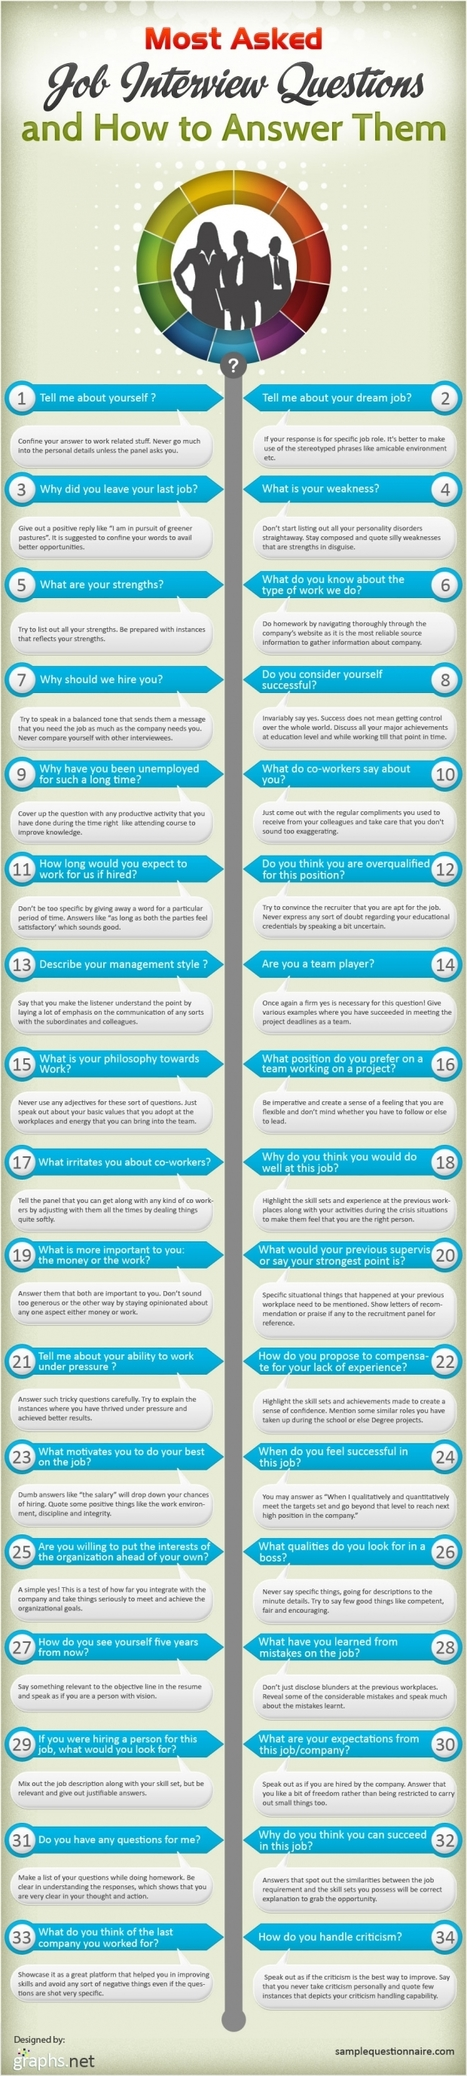 34 Most Asked Interview Questions | Family | Scoop.it